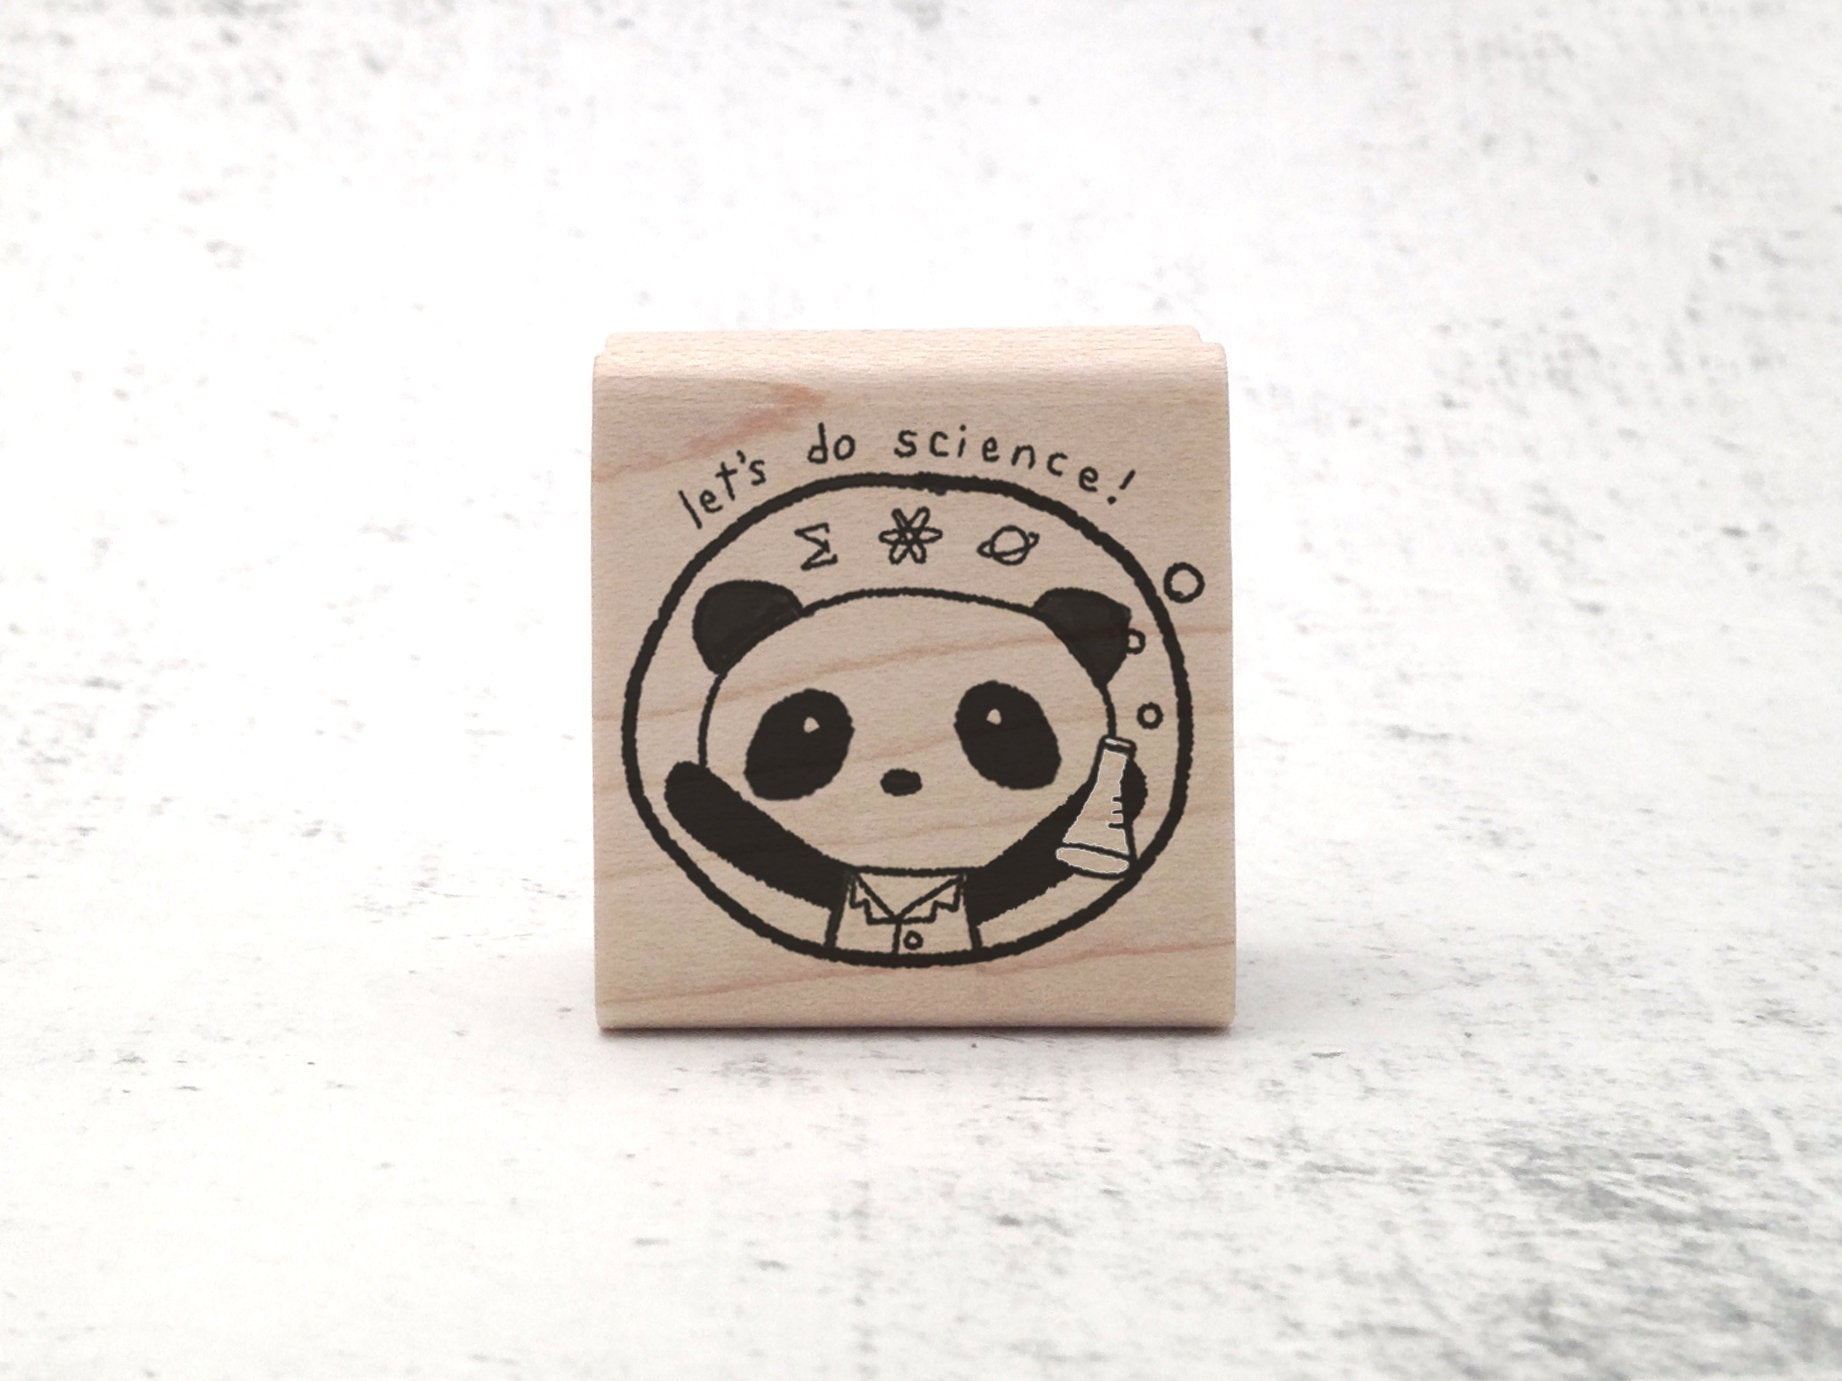 The Let's Do Science Lab Panda Rubber Stamp - Kawaii Science Panda Stamp - Funny Stamp - Teacher's Motivational Grading Stamp